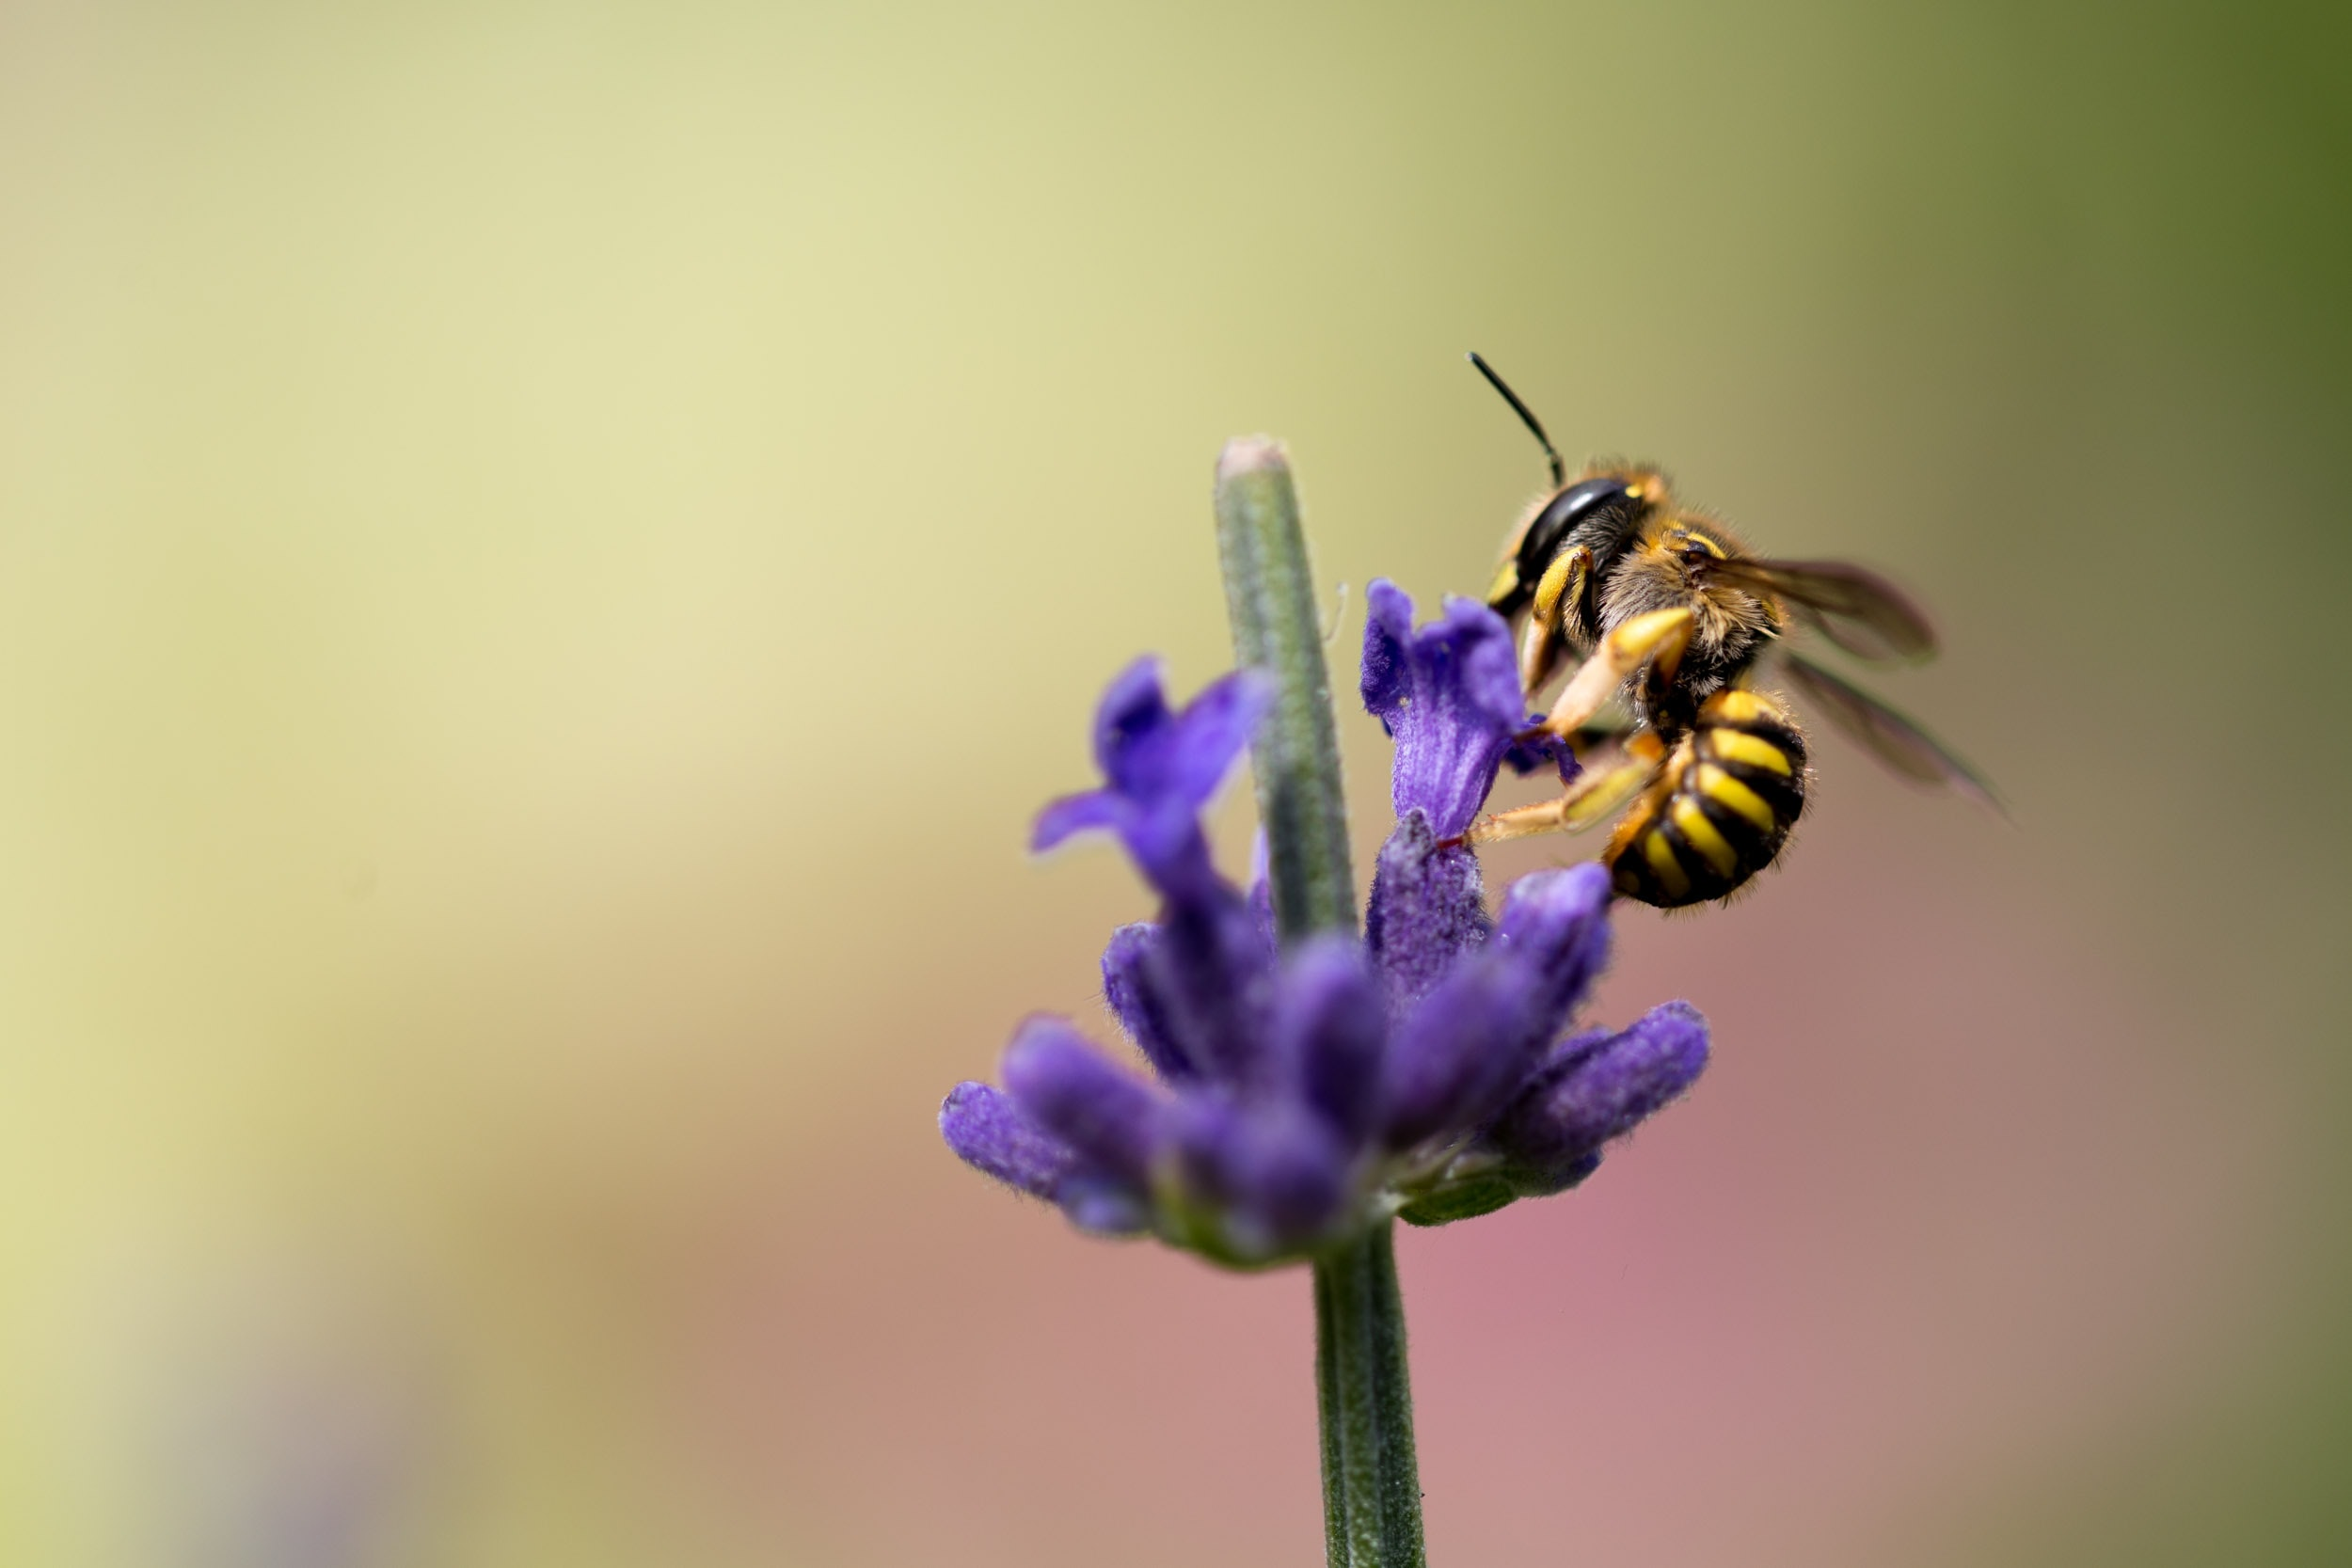 A wasp feeding on lavender flowers